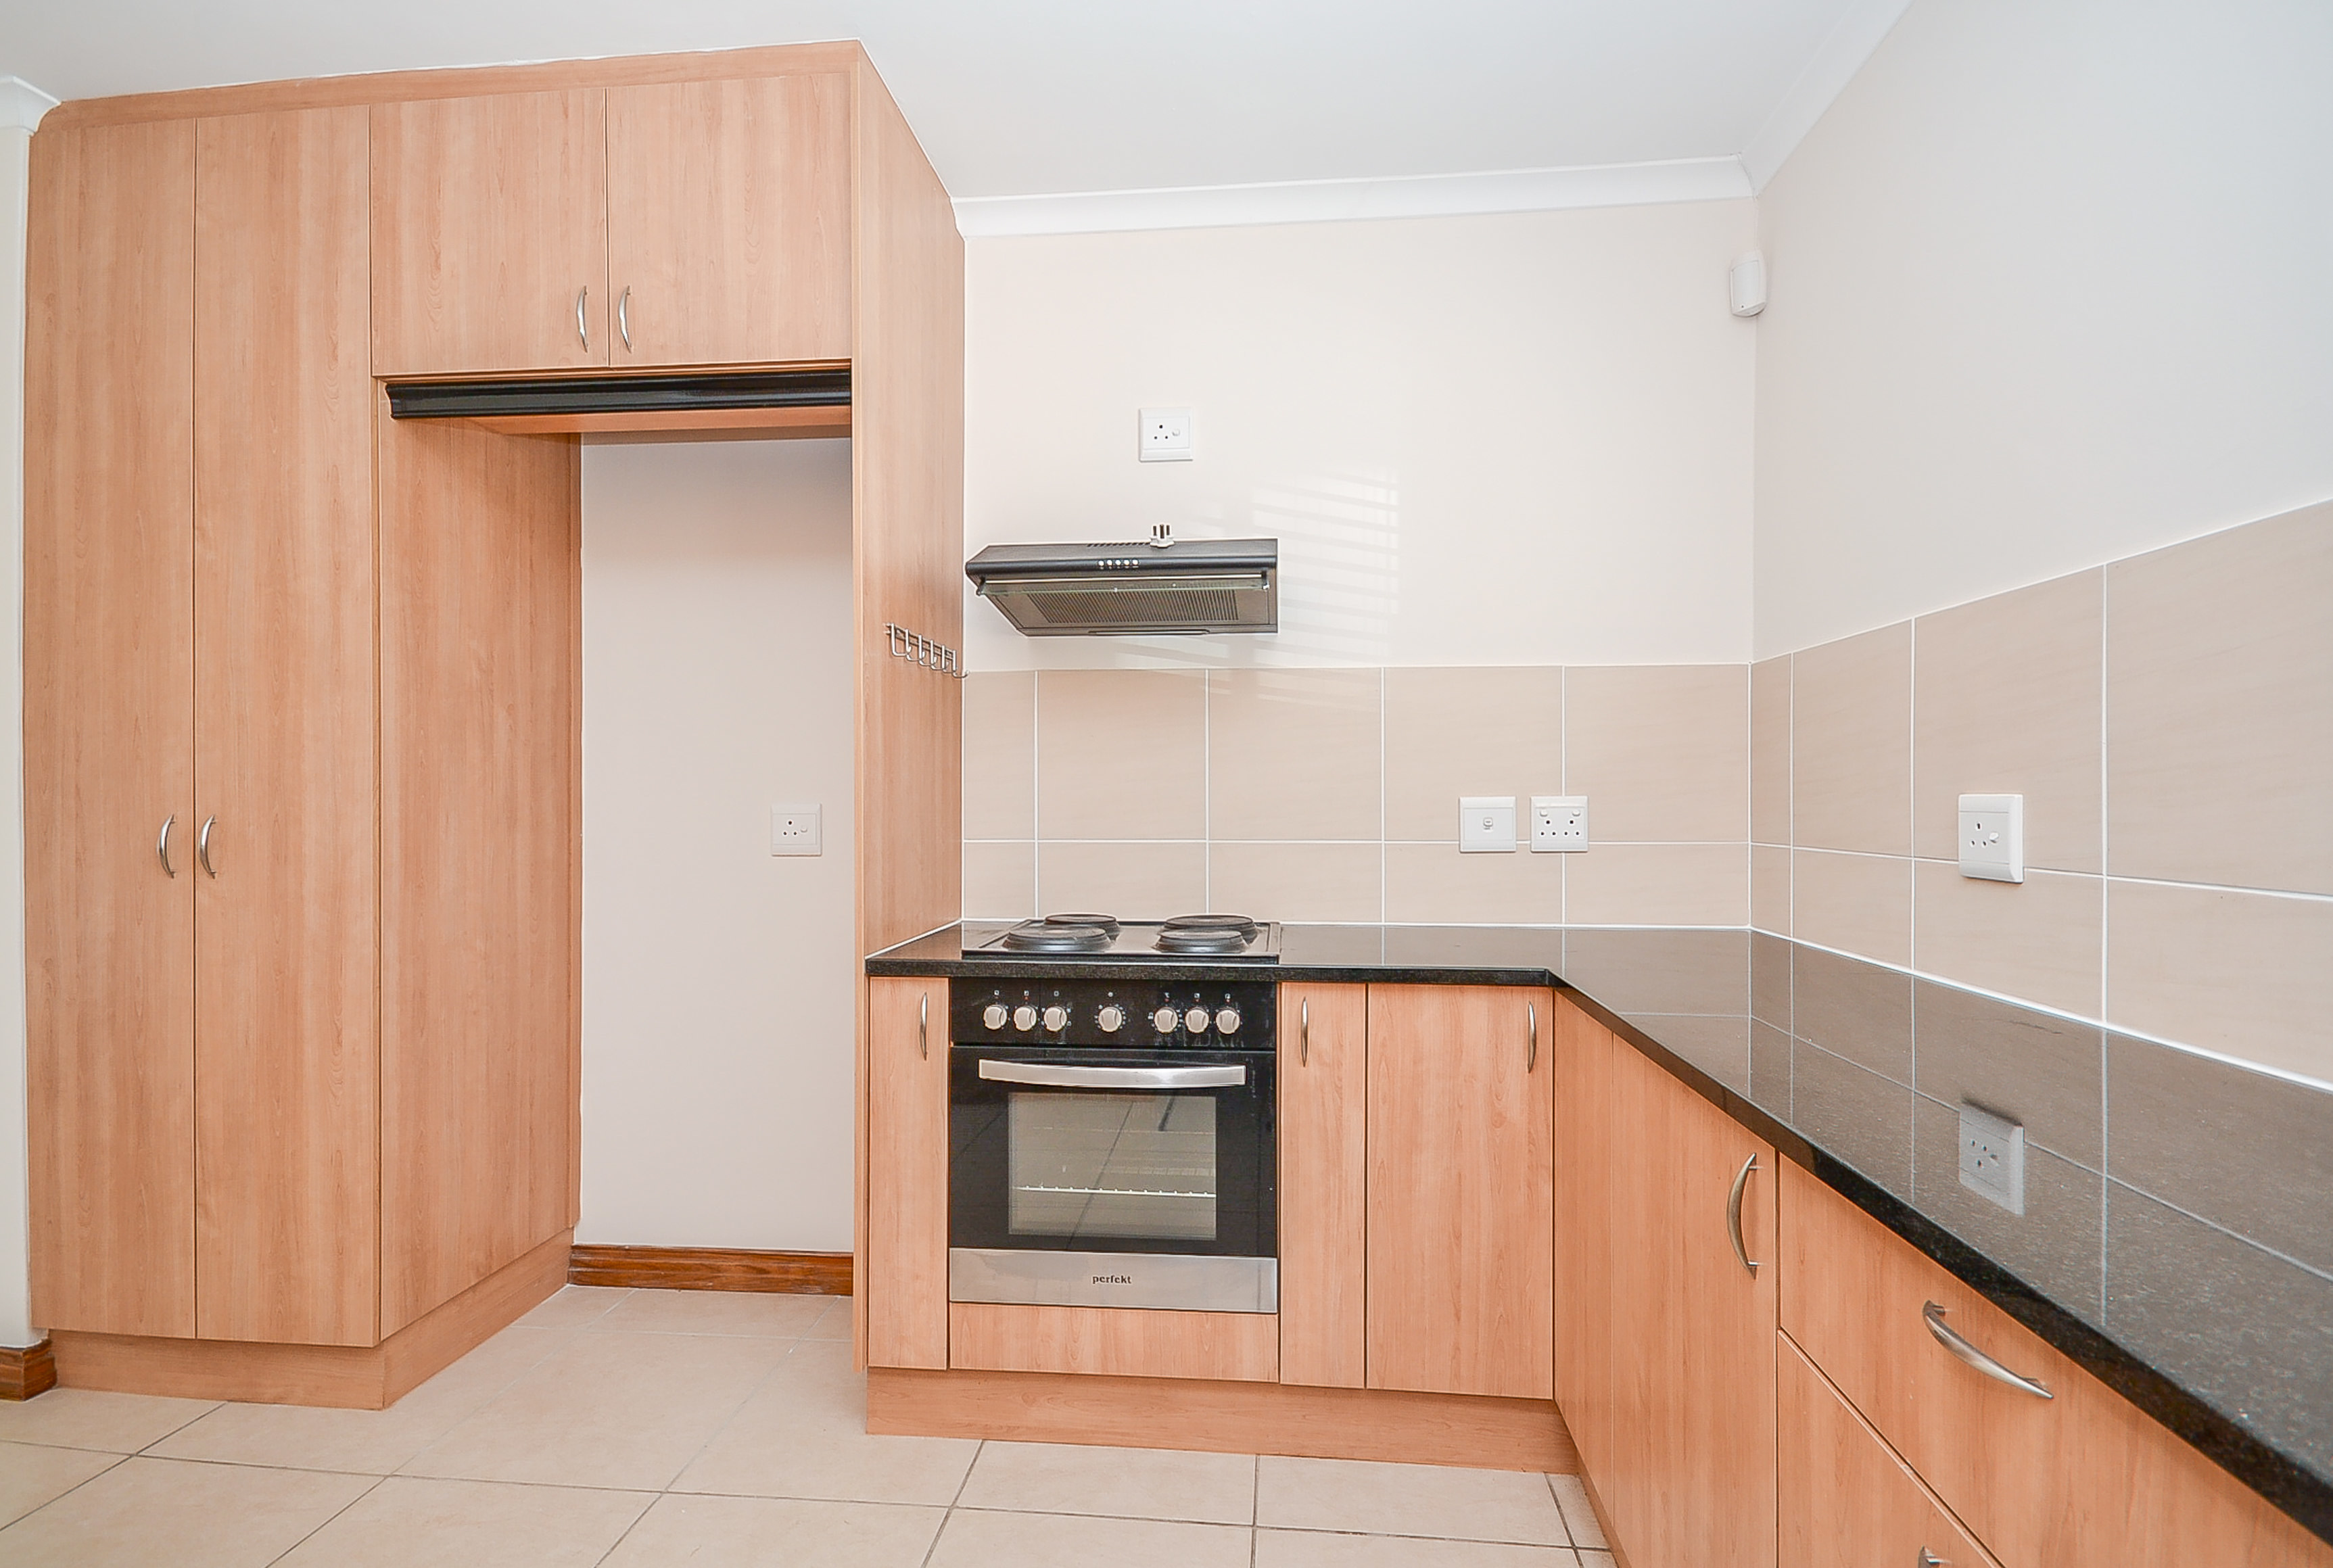 1 Bedroom House for sale in Dobson ENT0004379 : photo#3